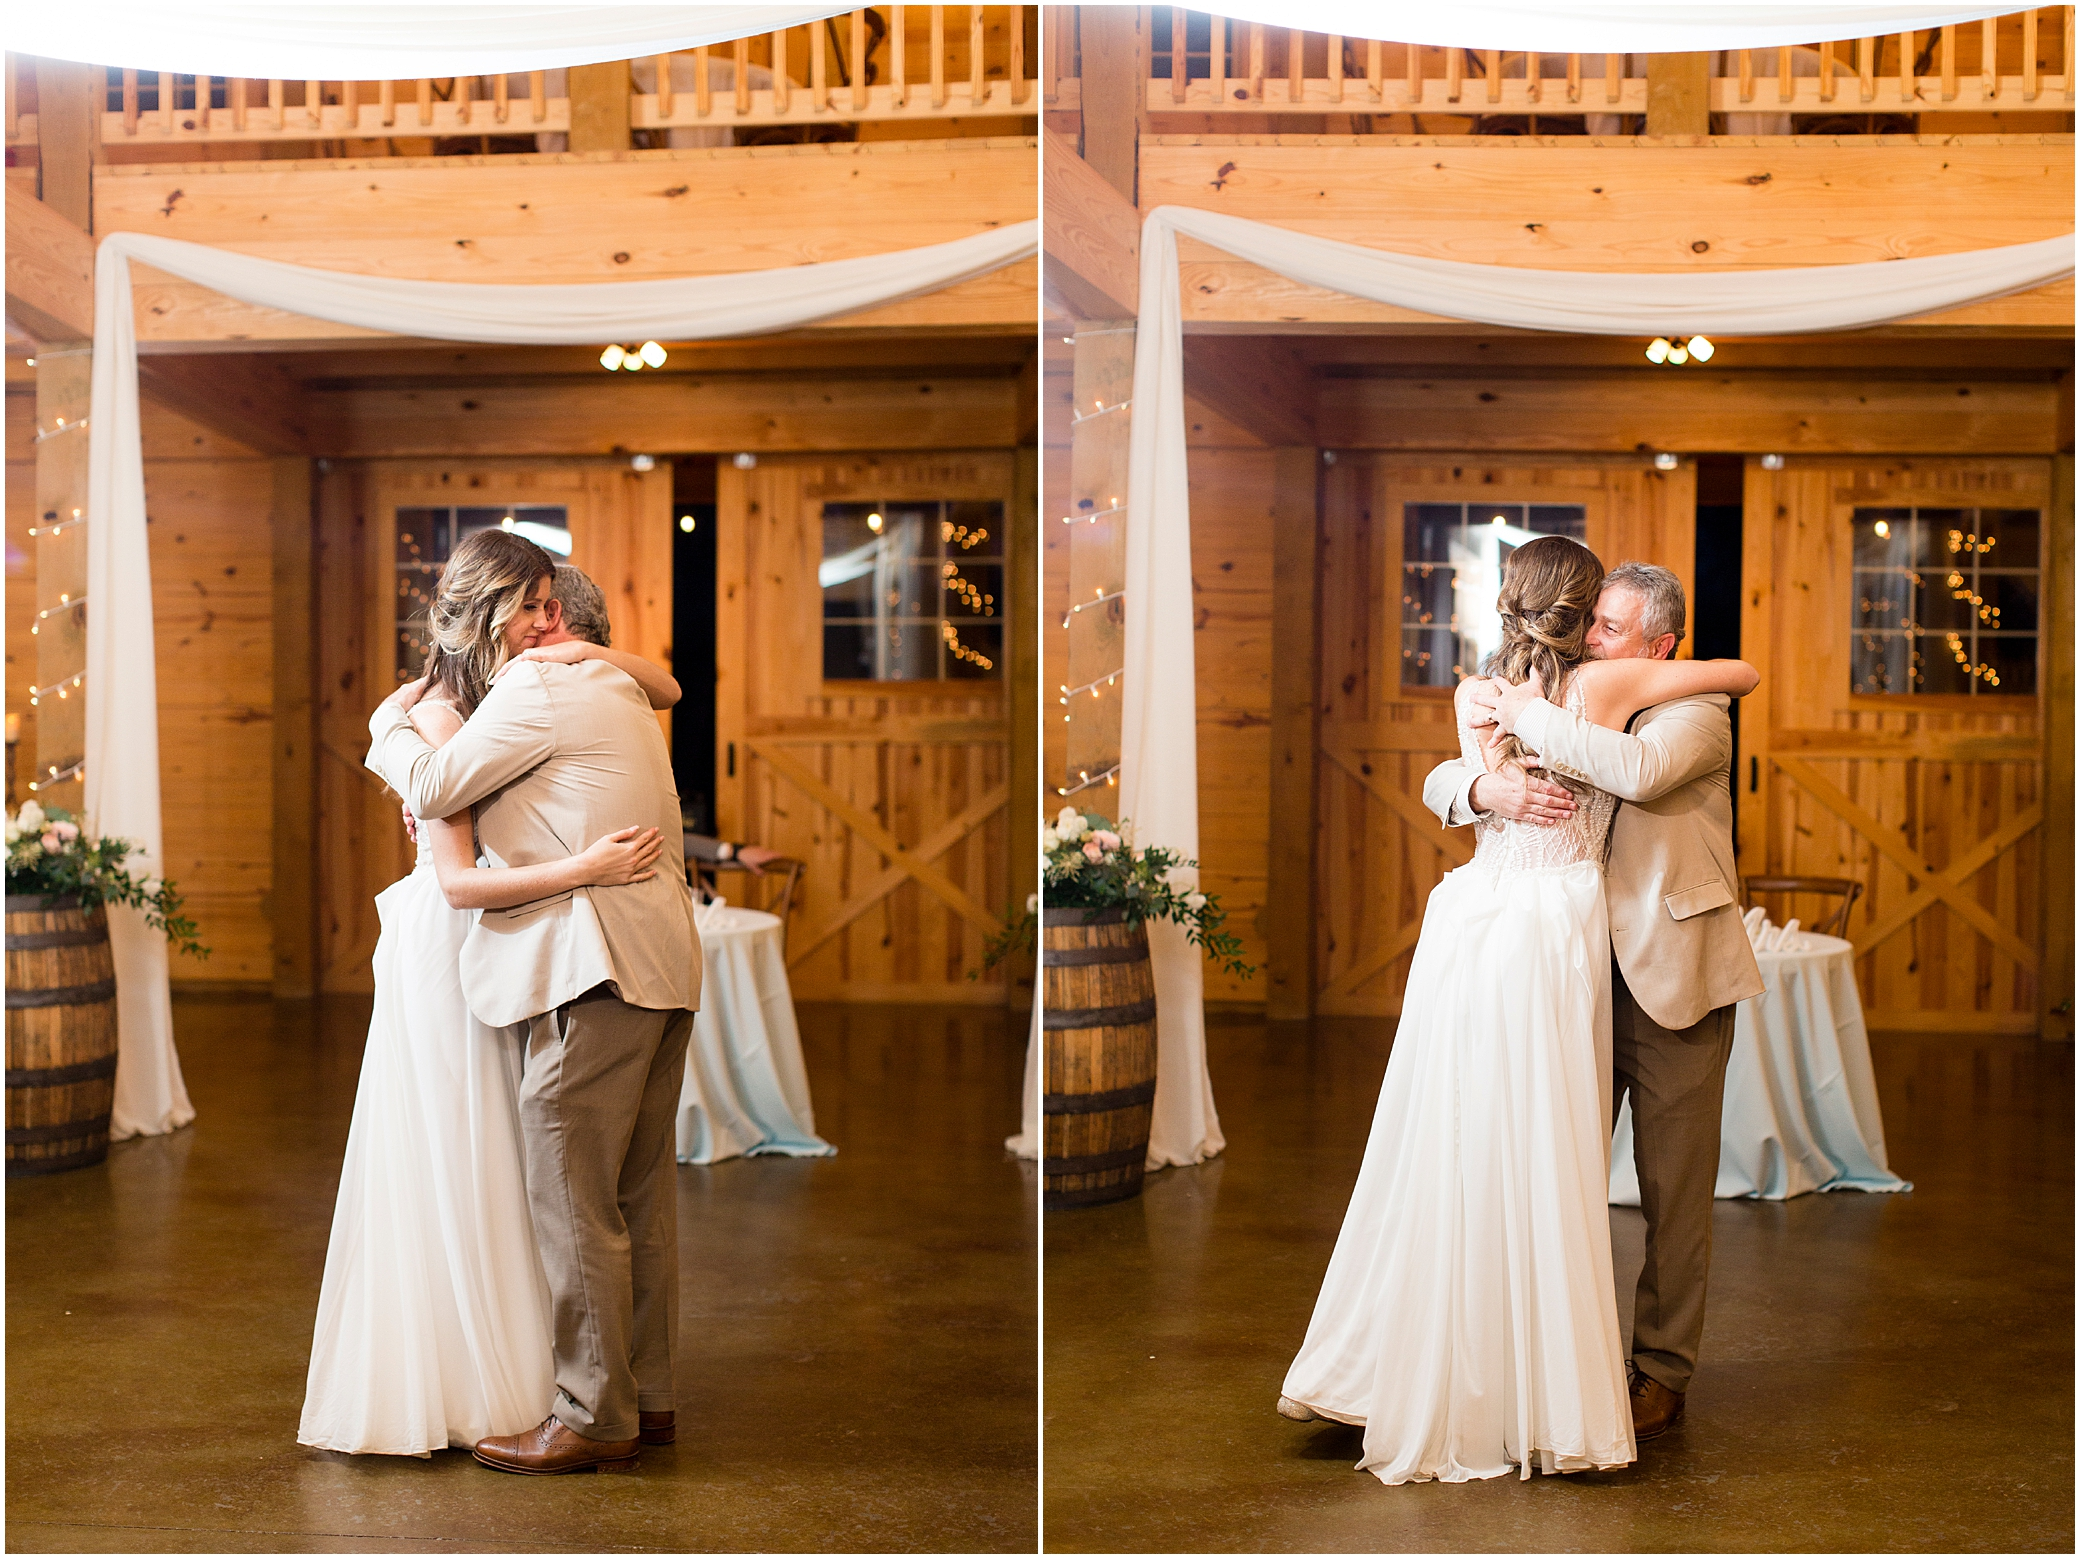 wedding reception in barn at sierra vista wedding, father and daughter dance